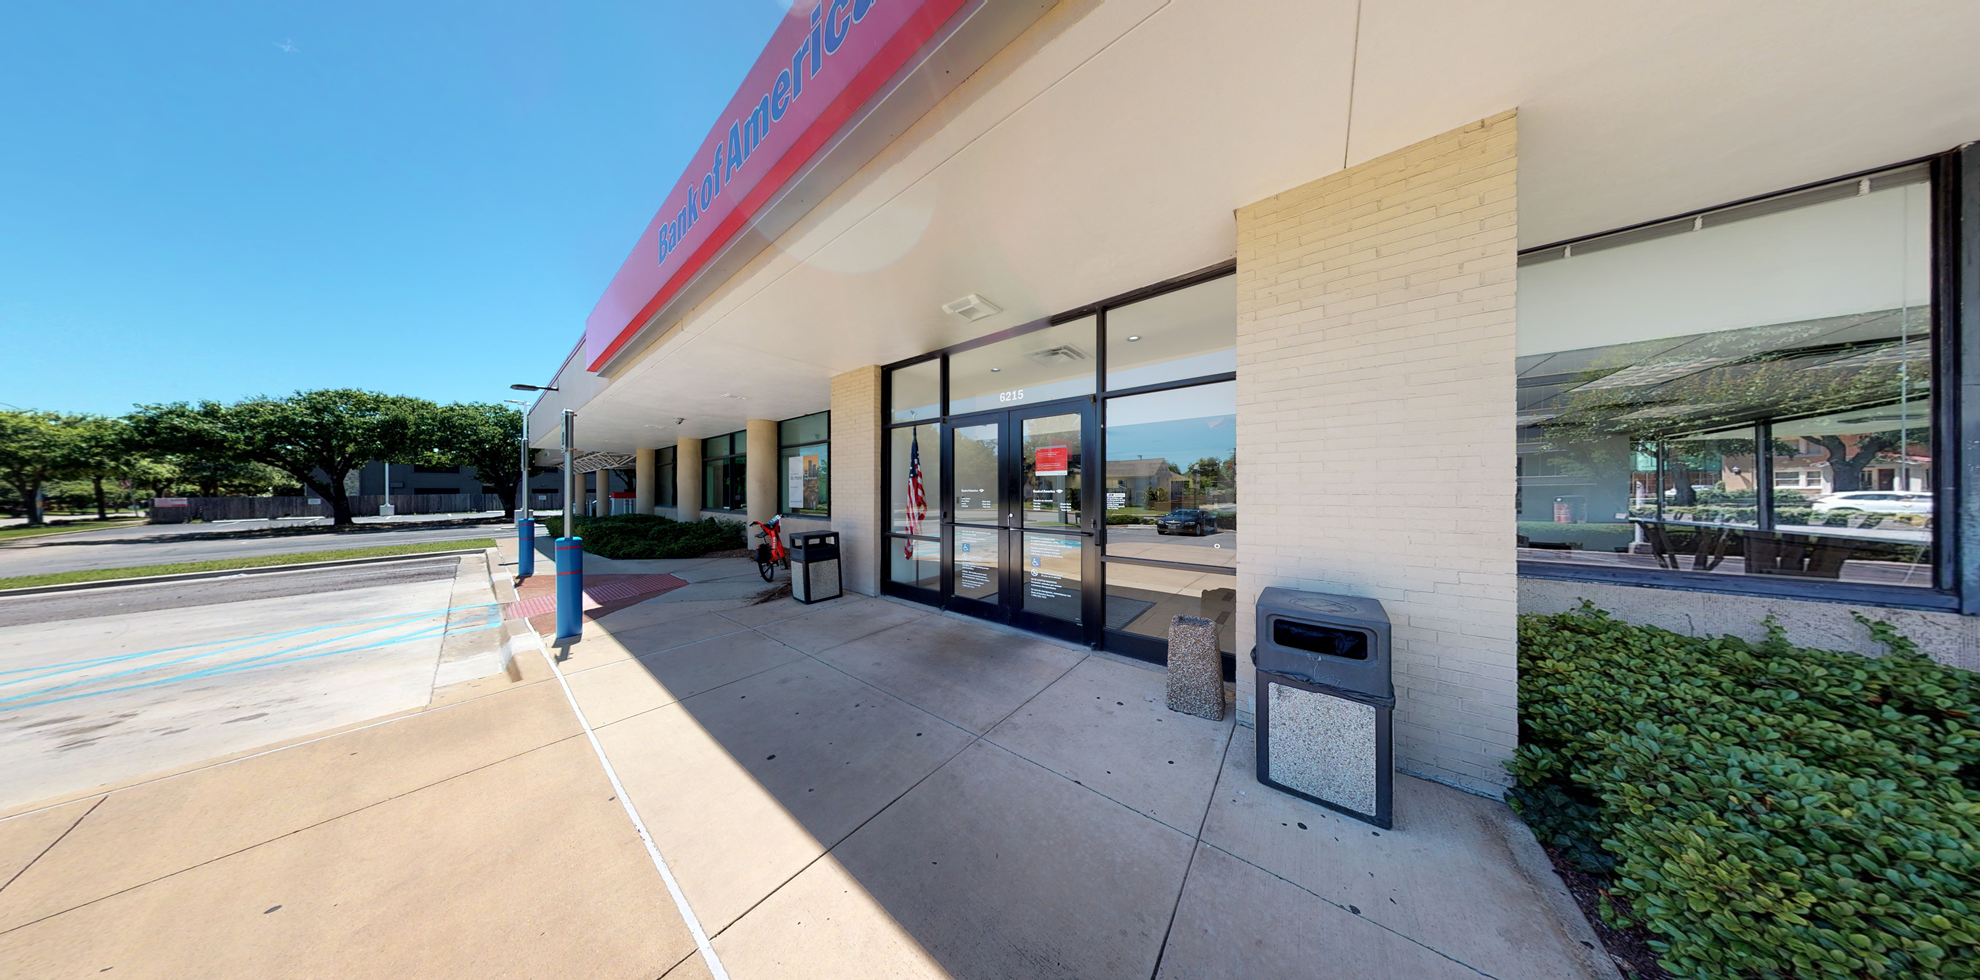 Bank of America financial center with drive-thru ATM | 6215 Gaston Ave, Dallas, TX 75214